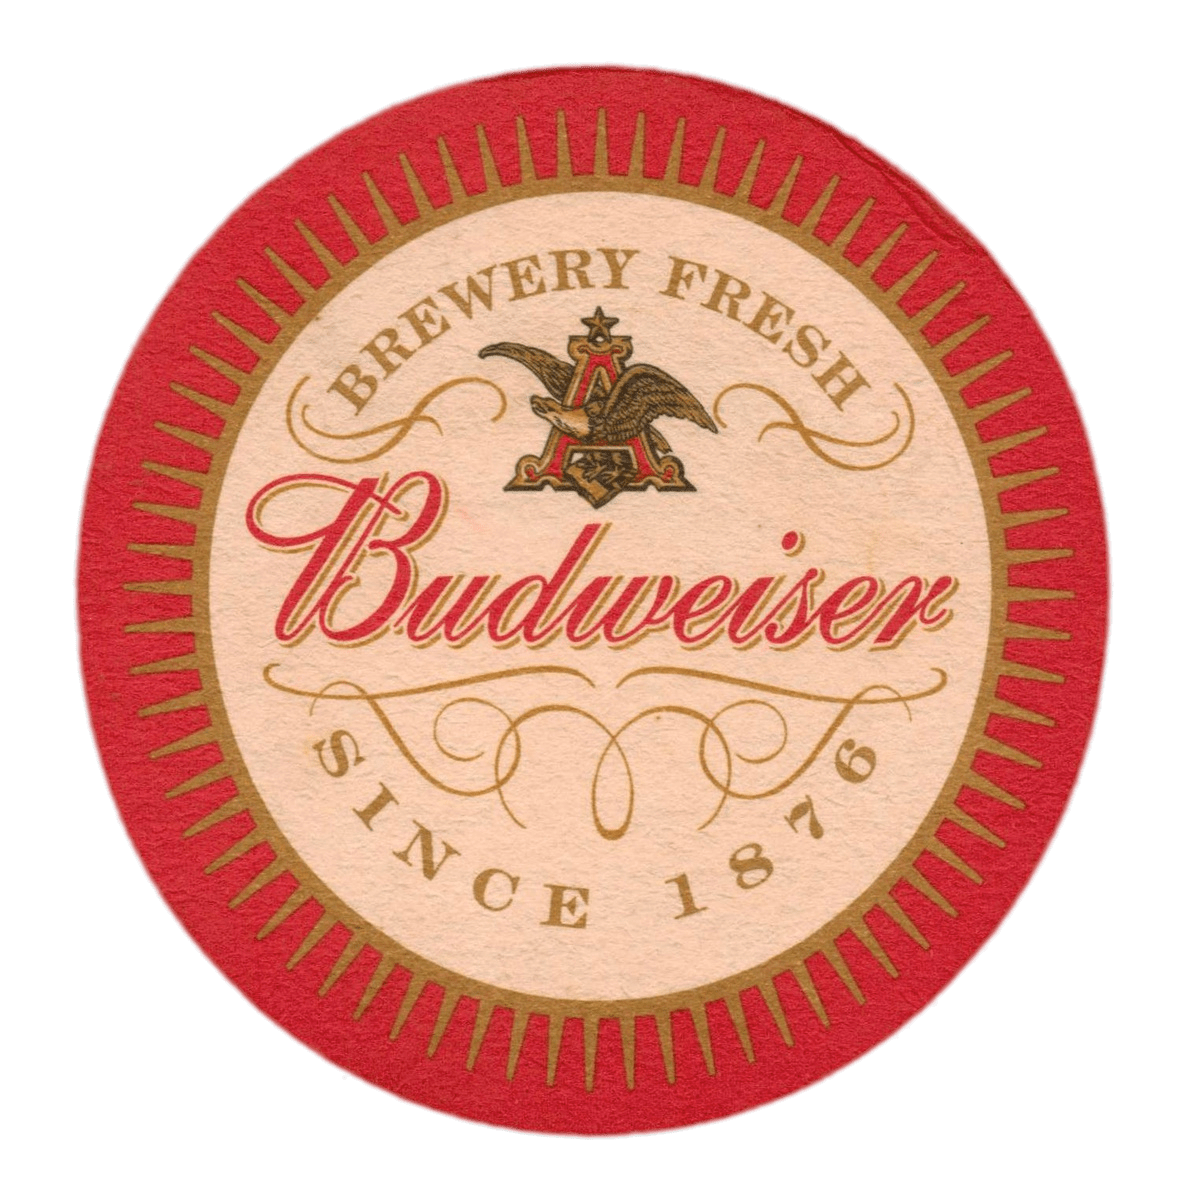 Budweiser holiday crate png. Beer coaster photos